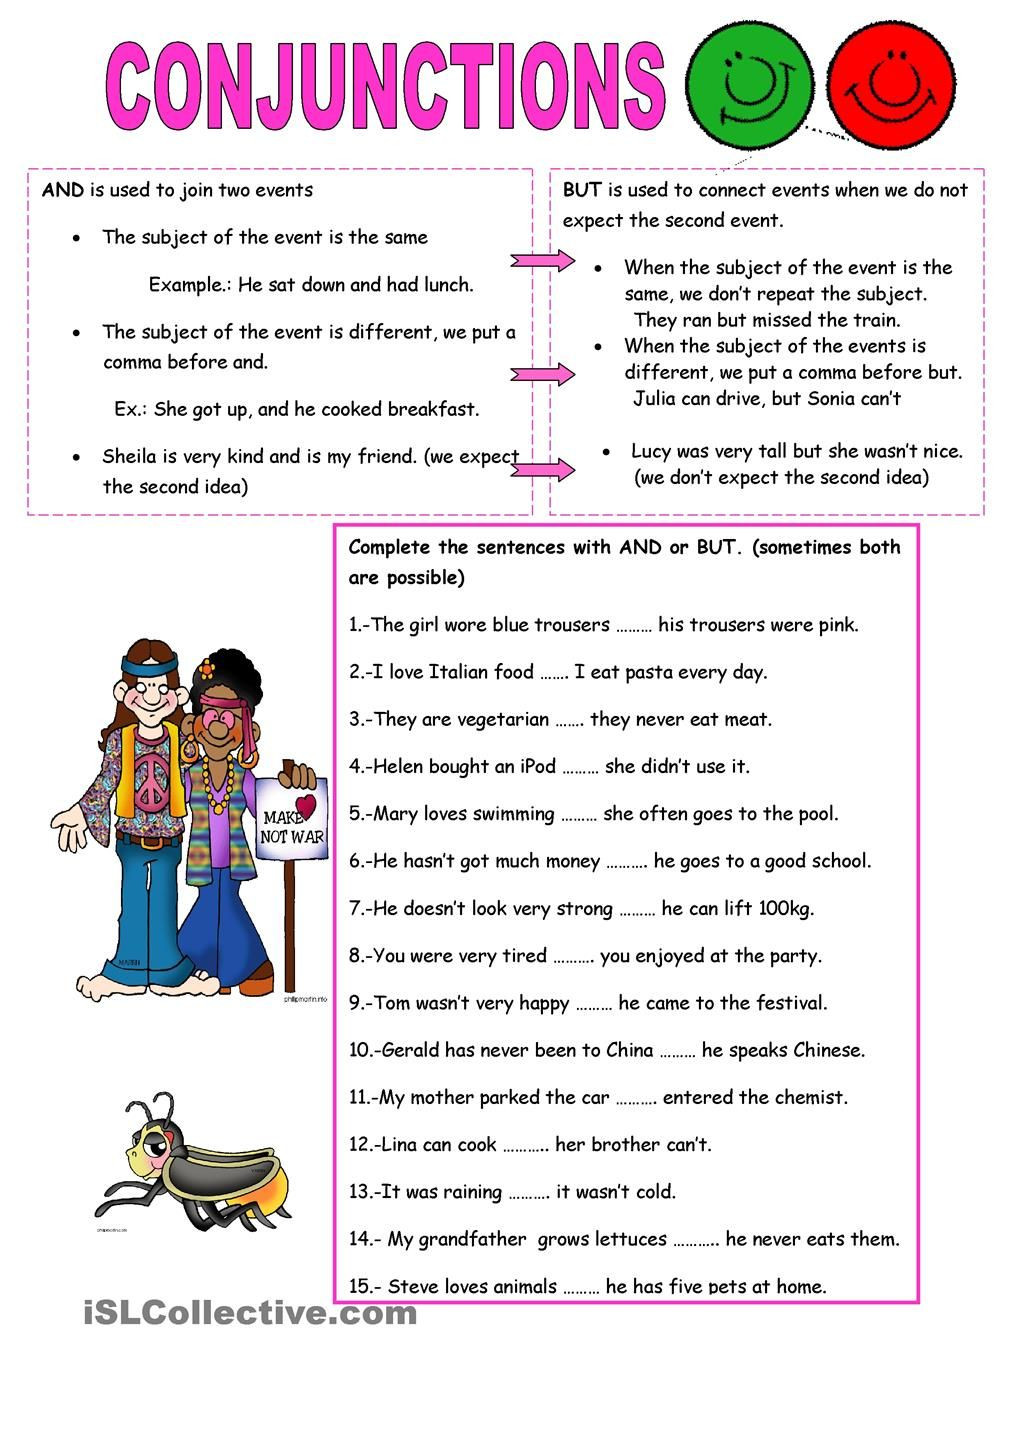 Conjunction Worksheet 5th Grade Conjunctions and but